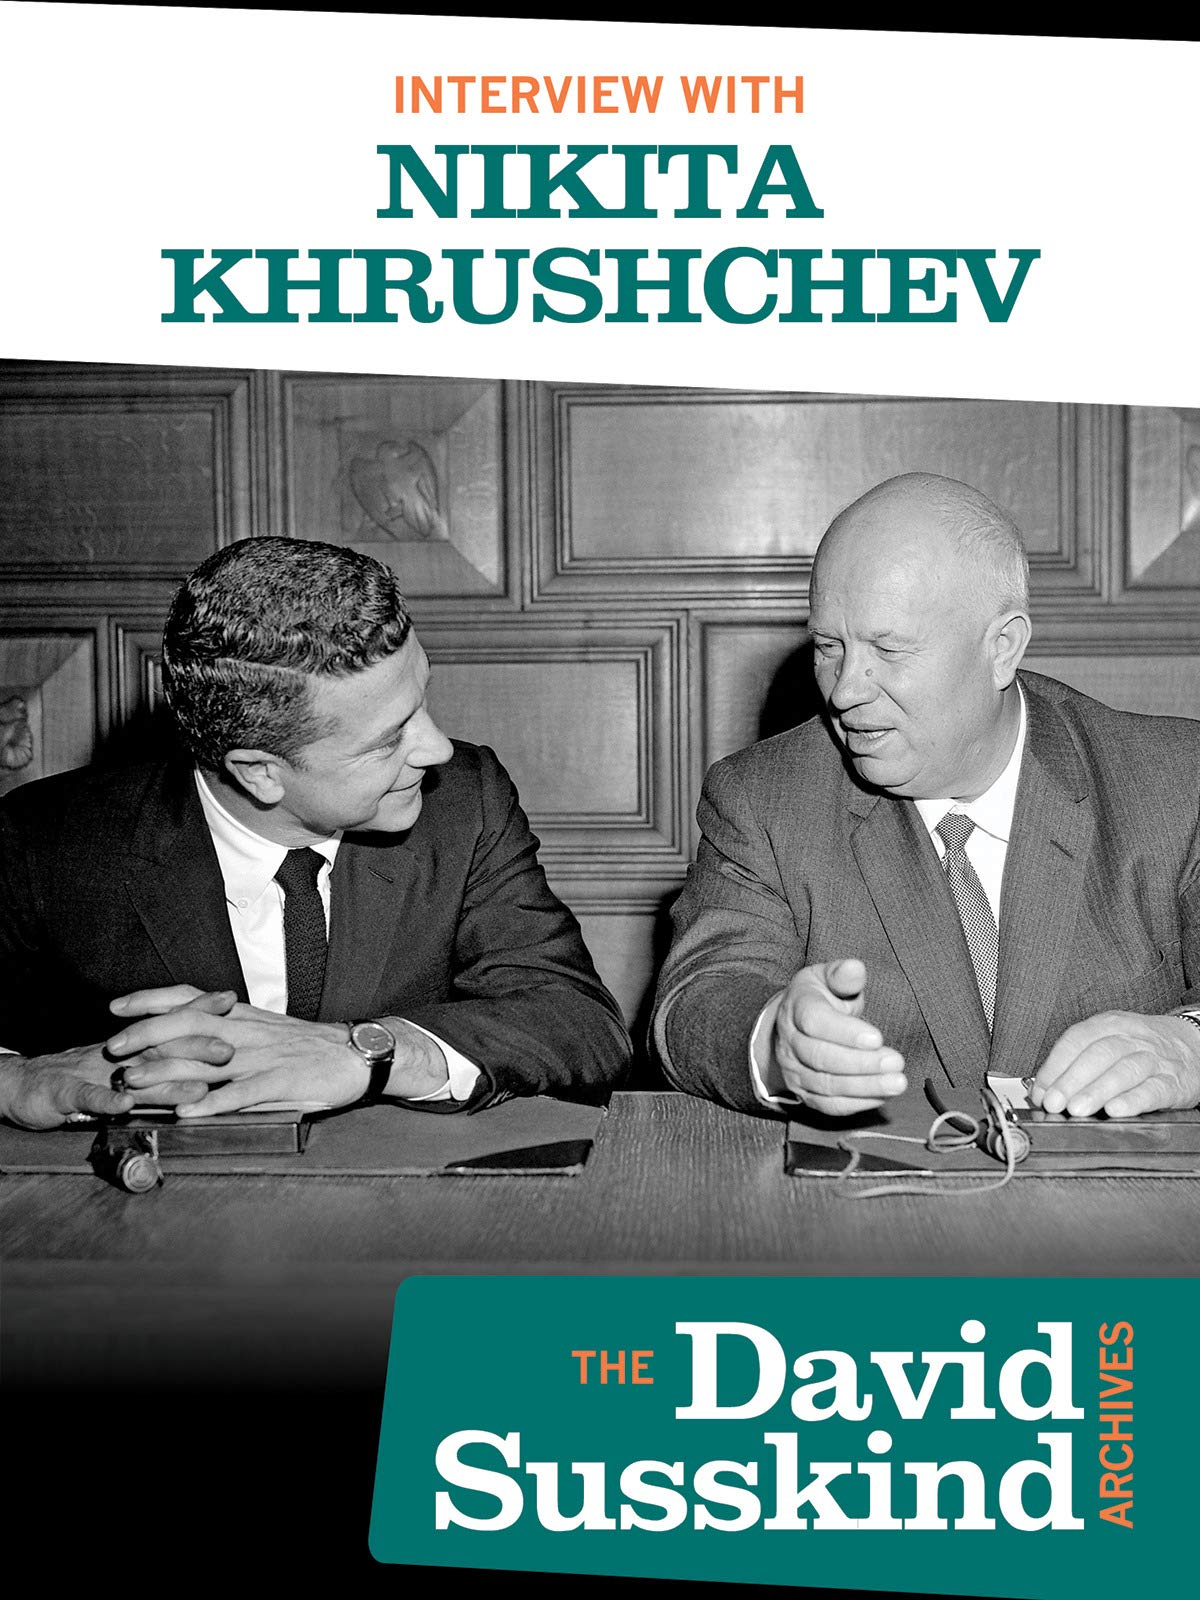 David Susskind Archive: Interview With Nikita Khrushchev on Amazon Prime Instant Video UK